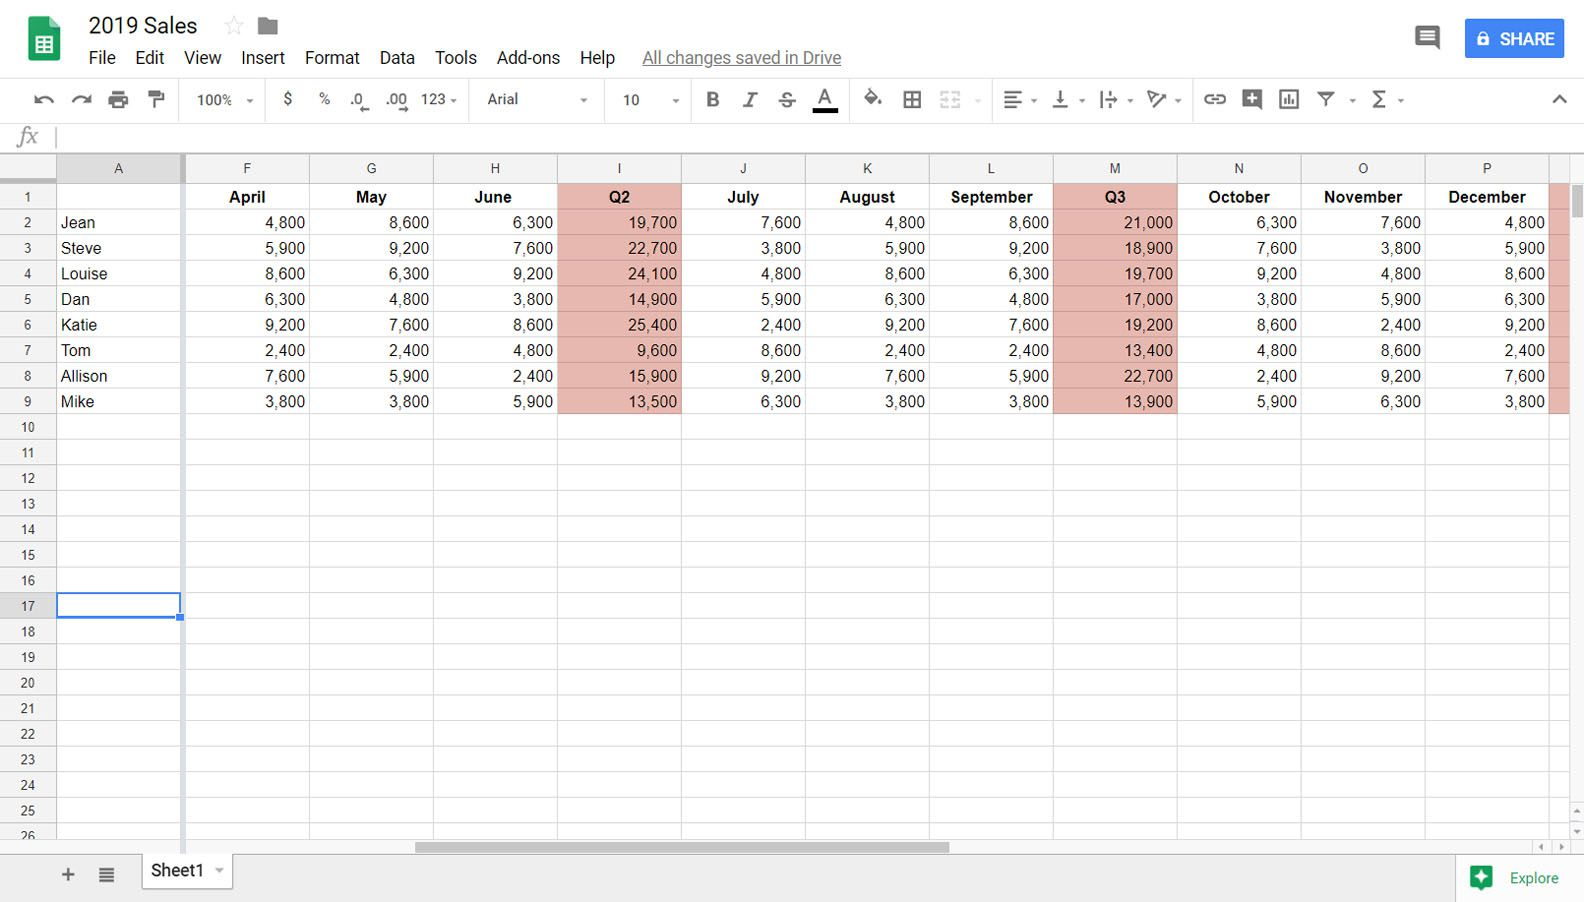 How To Add Hide Freeze Or Remove Columns In Sheets